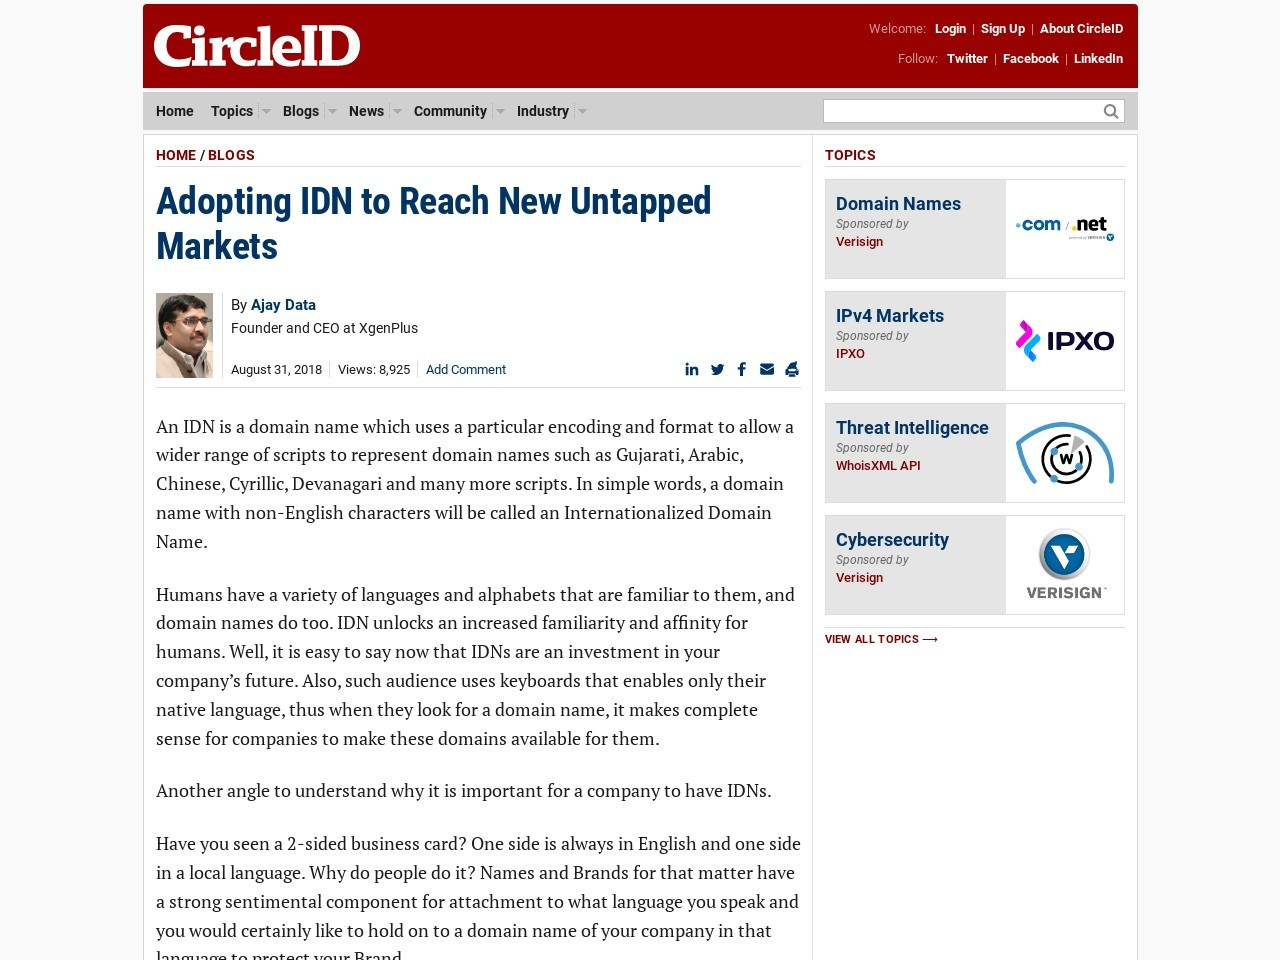 Adopting IDN to Reach New Untapped Markets